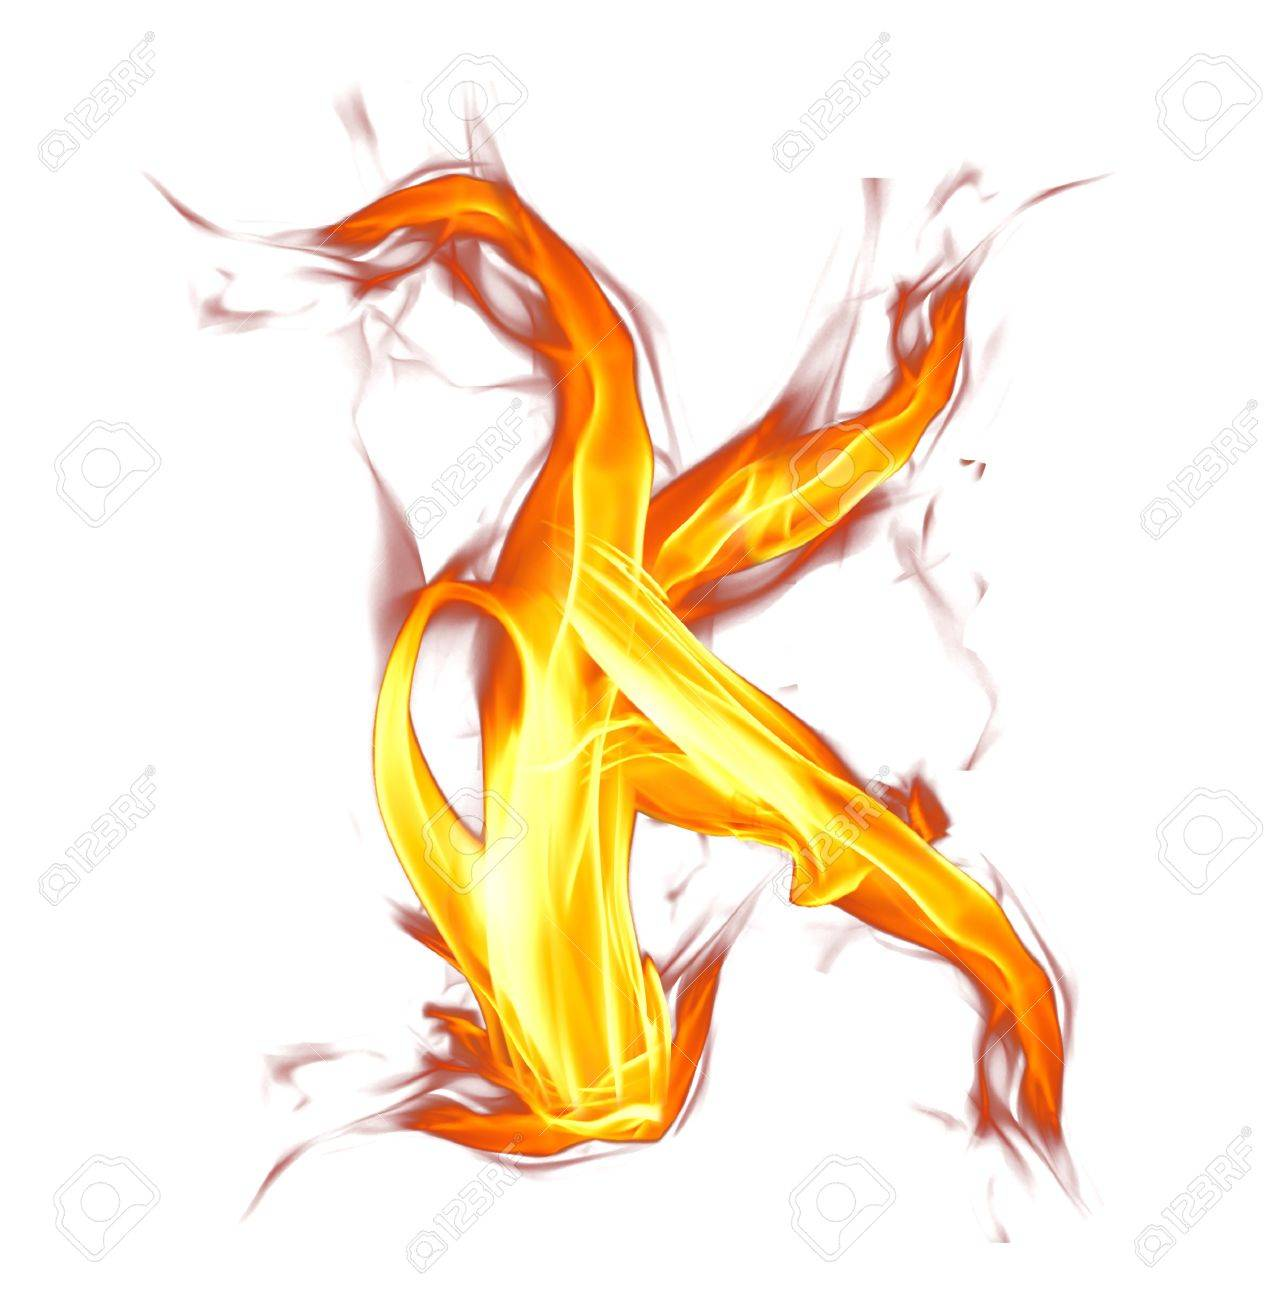 Fire letter isolated on white background Stock Photo - 18000831